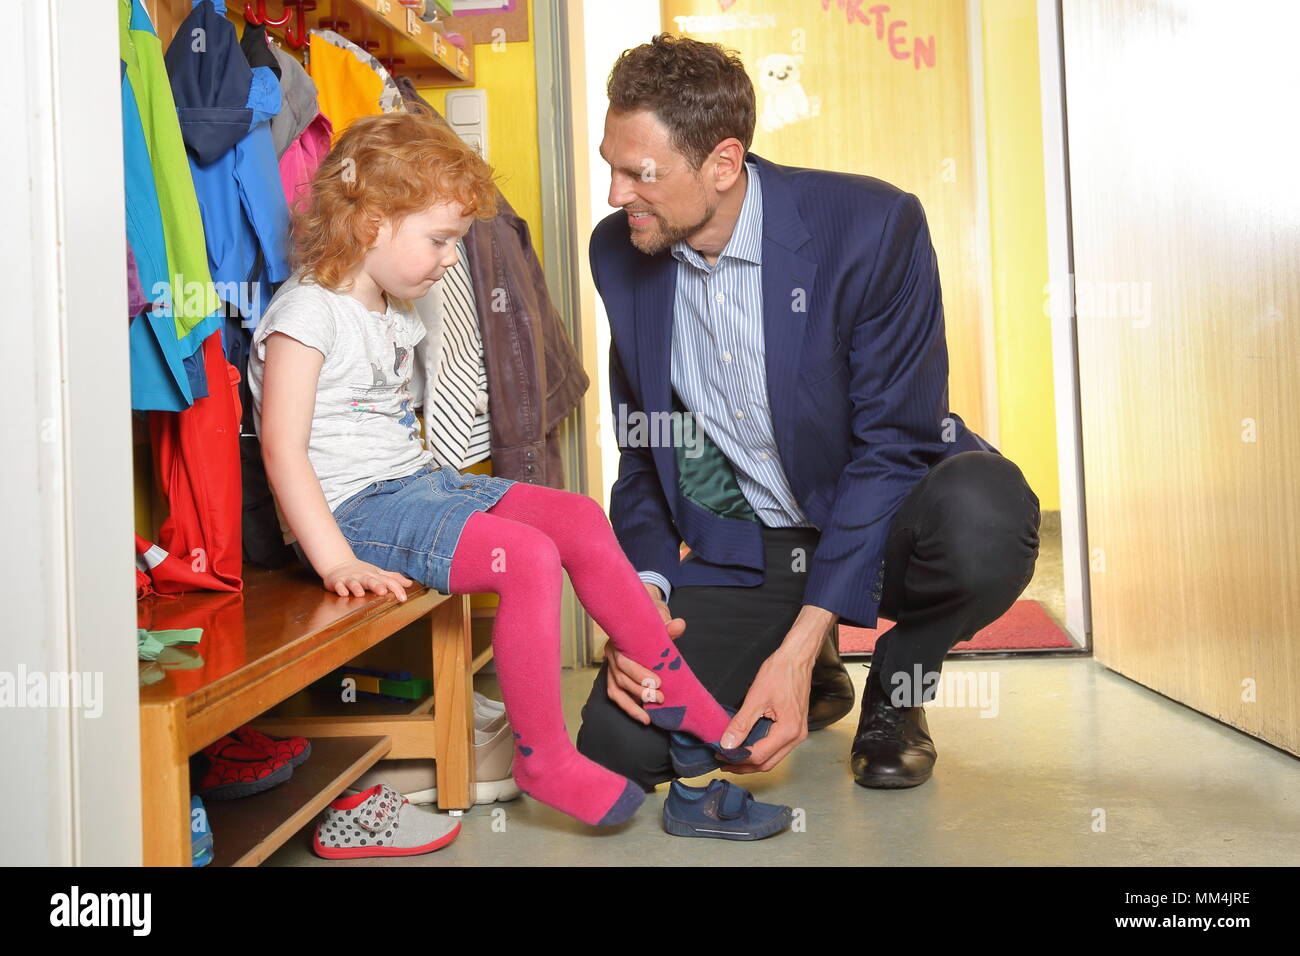 A father picks up his child in nursery - Stock Image